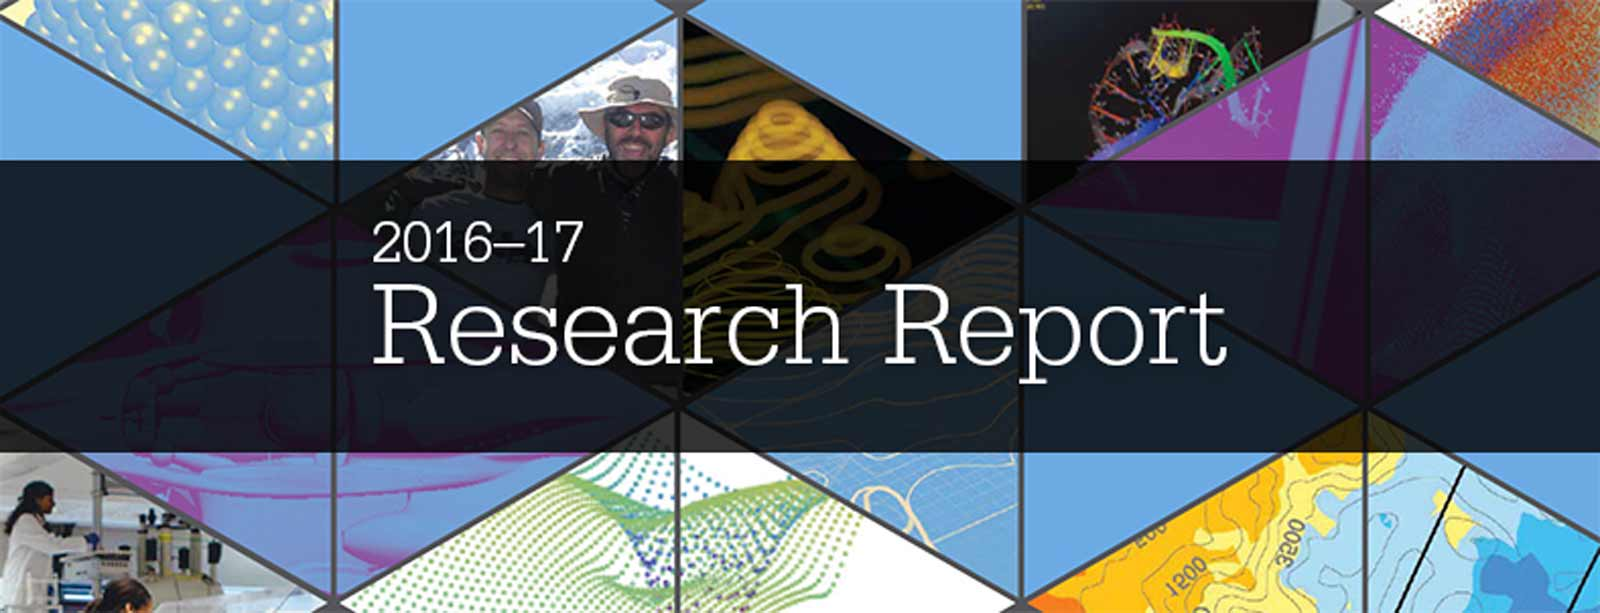 Research Report 2017 Banner